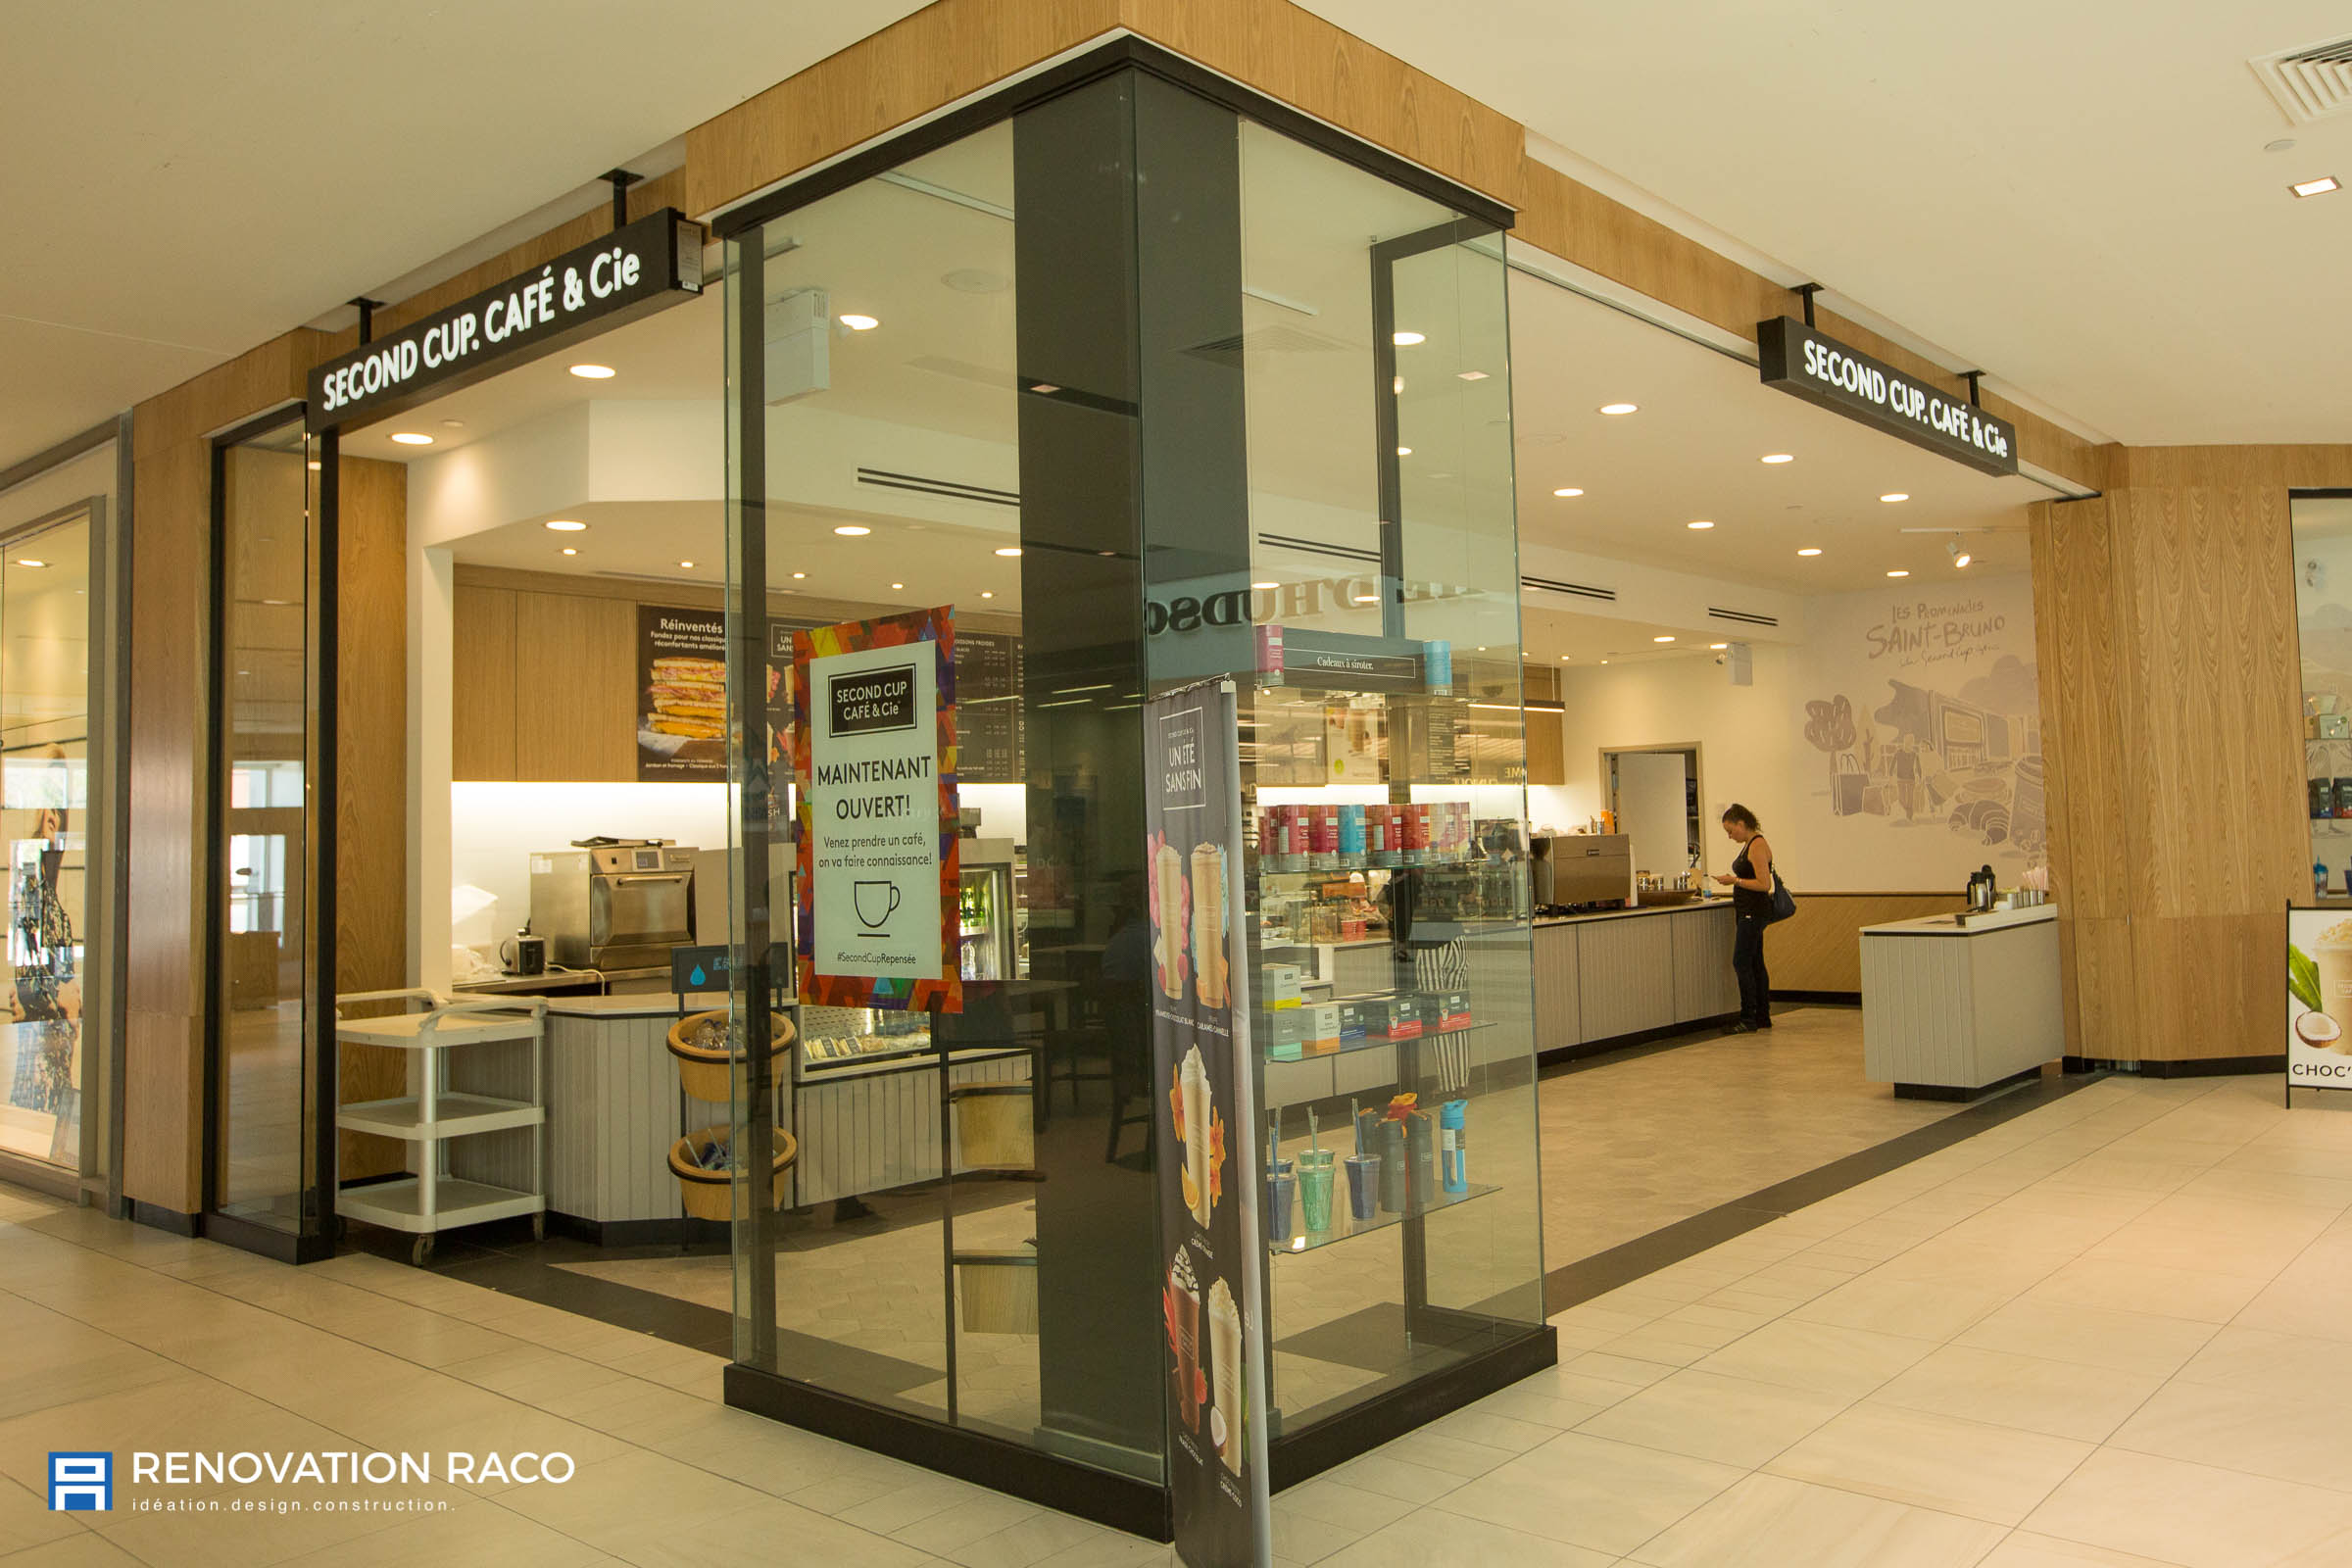 Renovation-Raco-Montreal-Second Cup-01.jpg